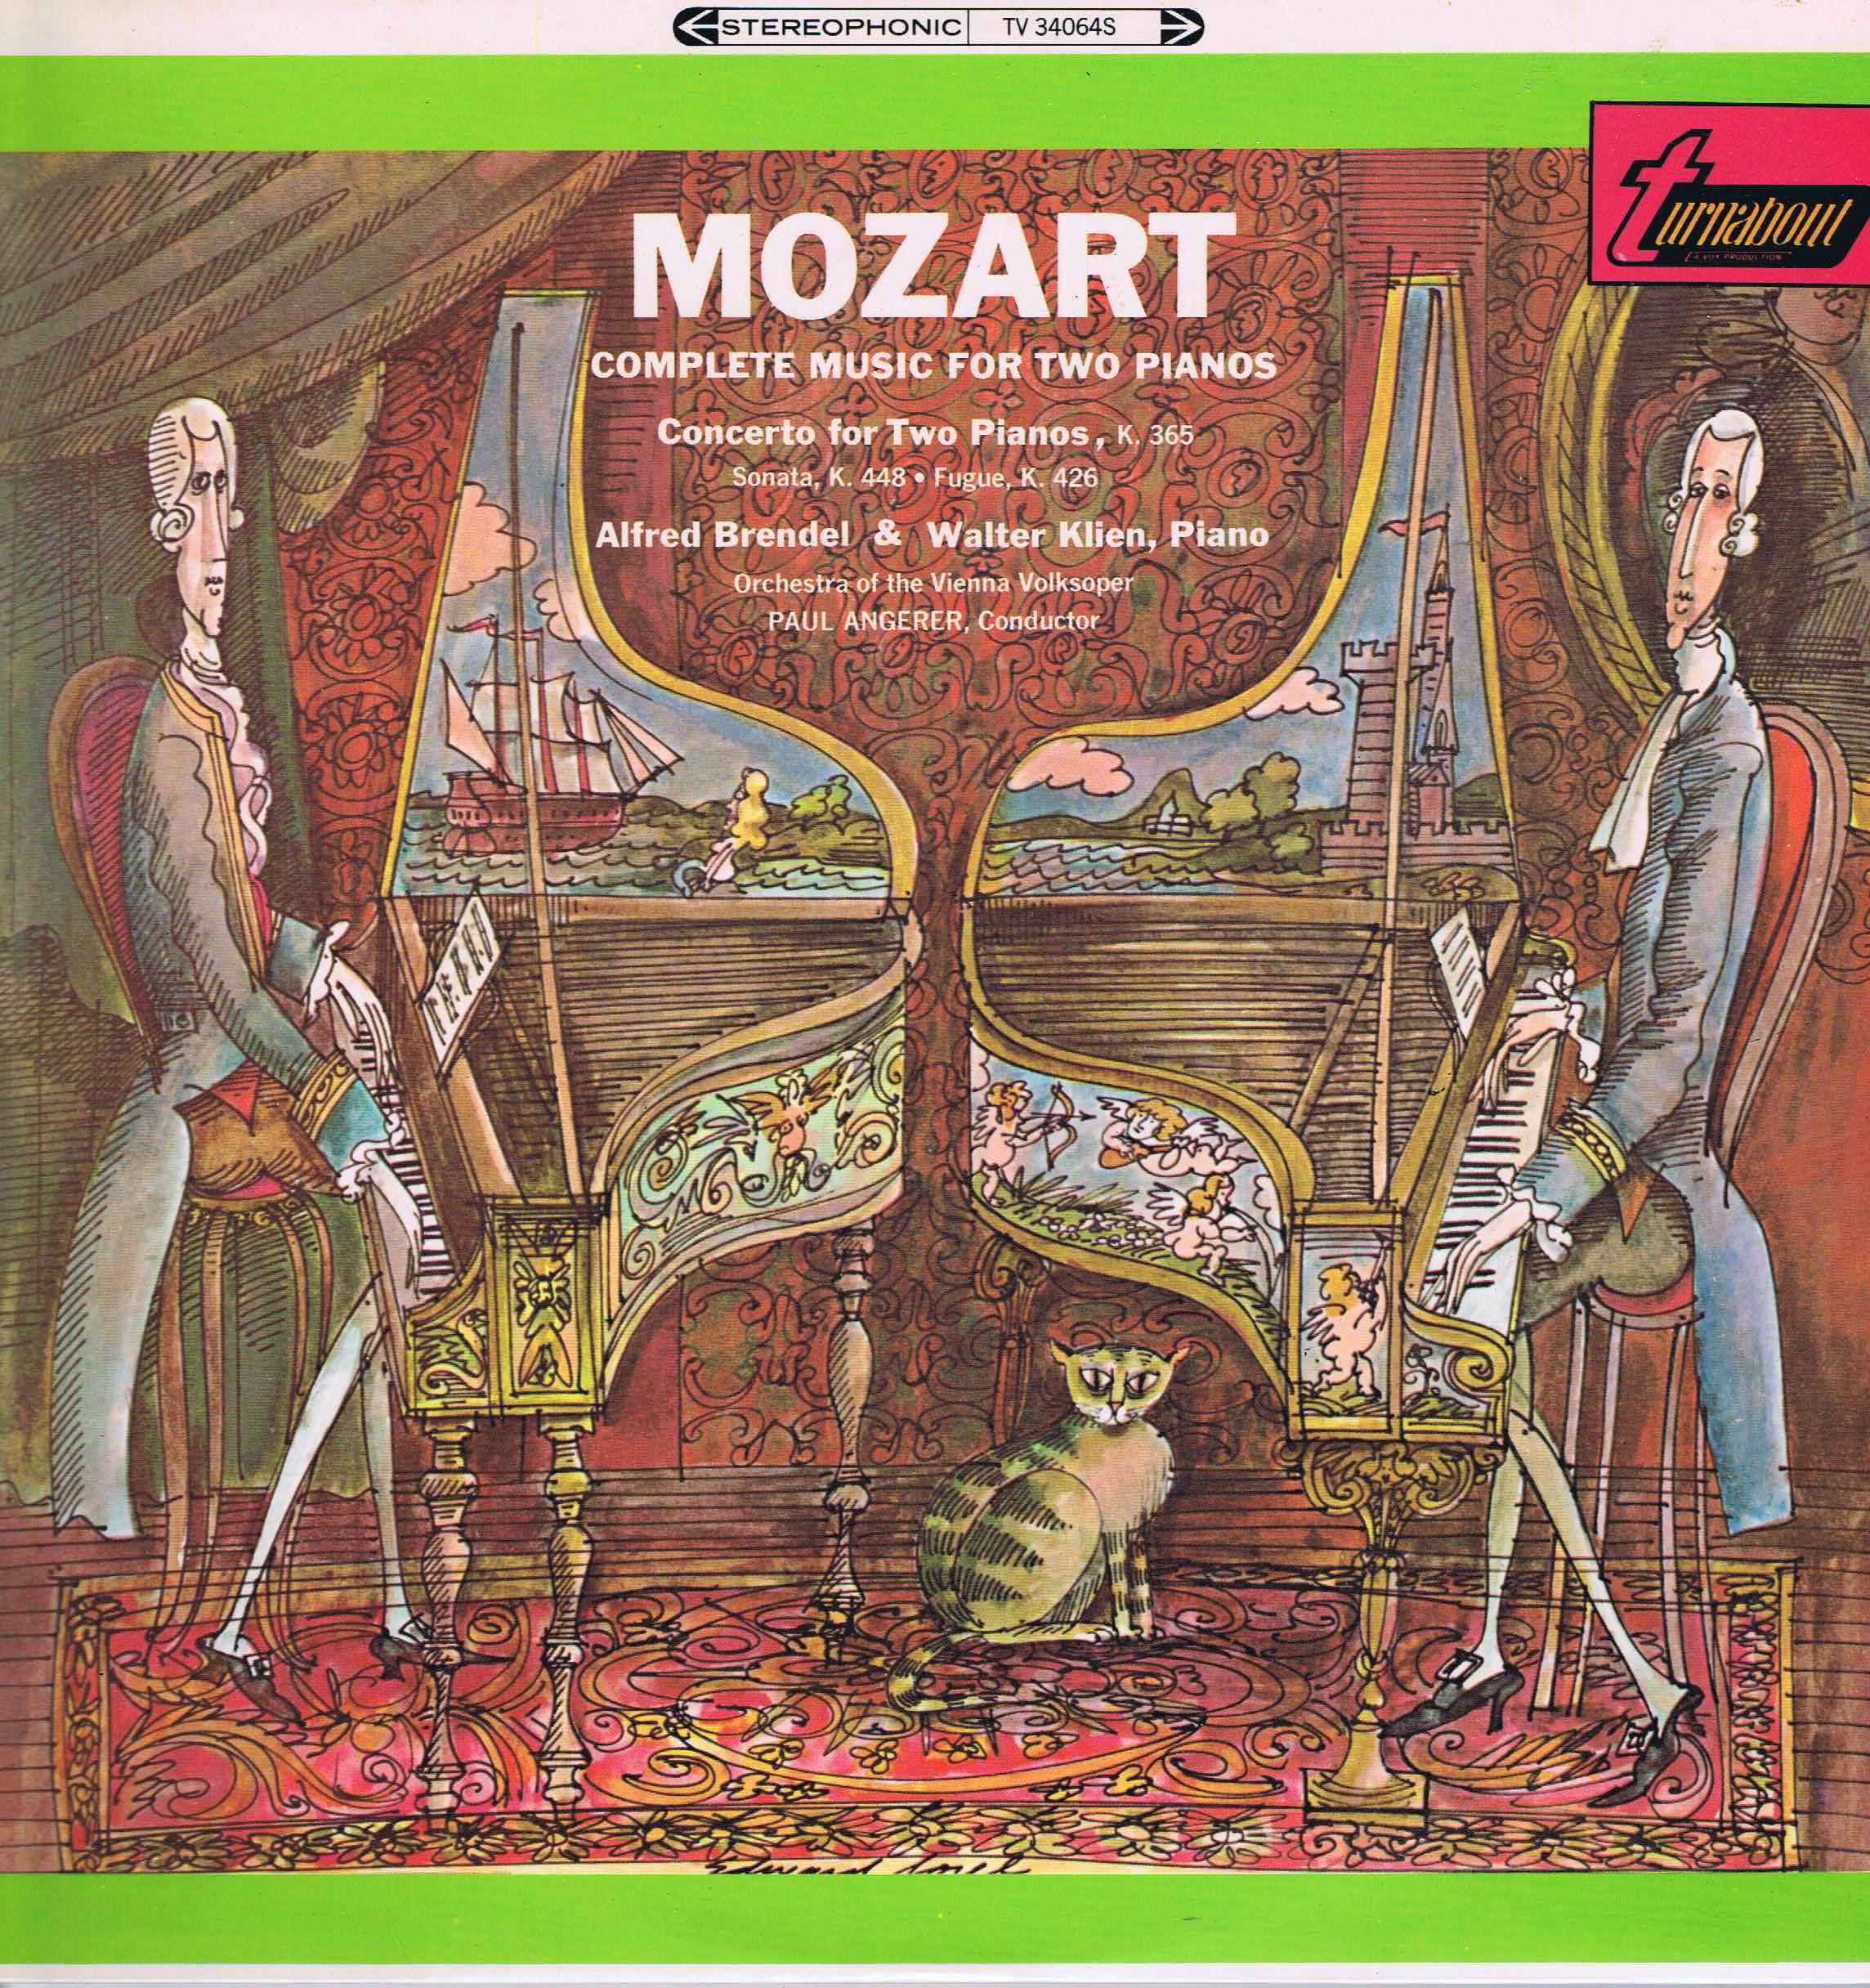 Turnabout Tv 34064s Mozart Complete Music For Two Pianos